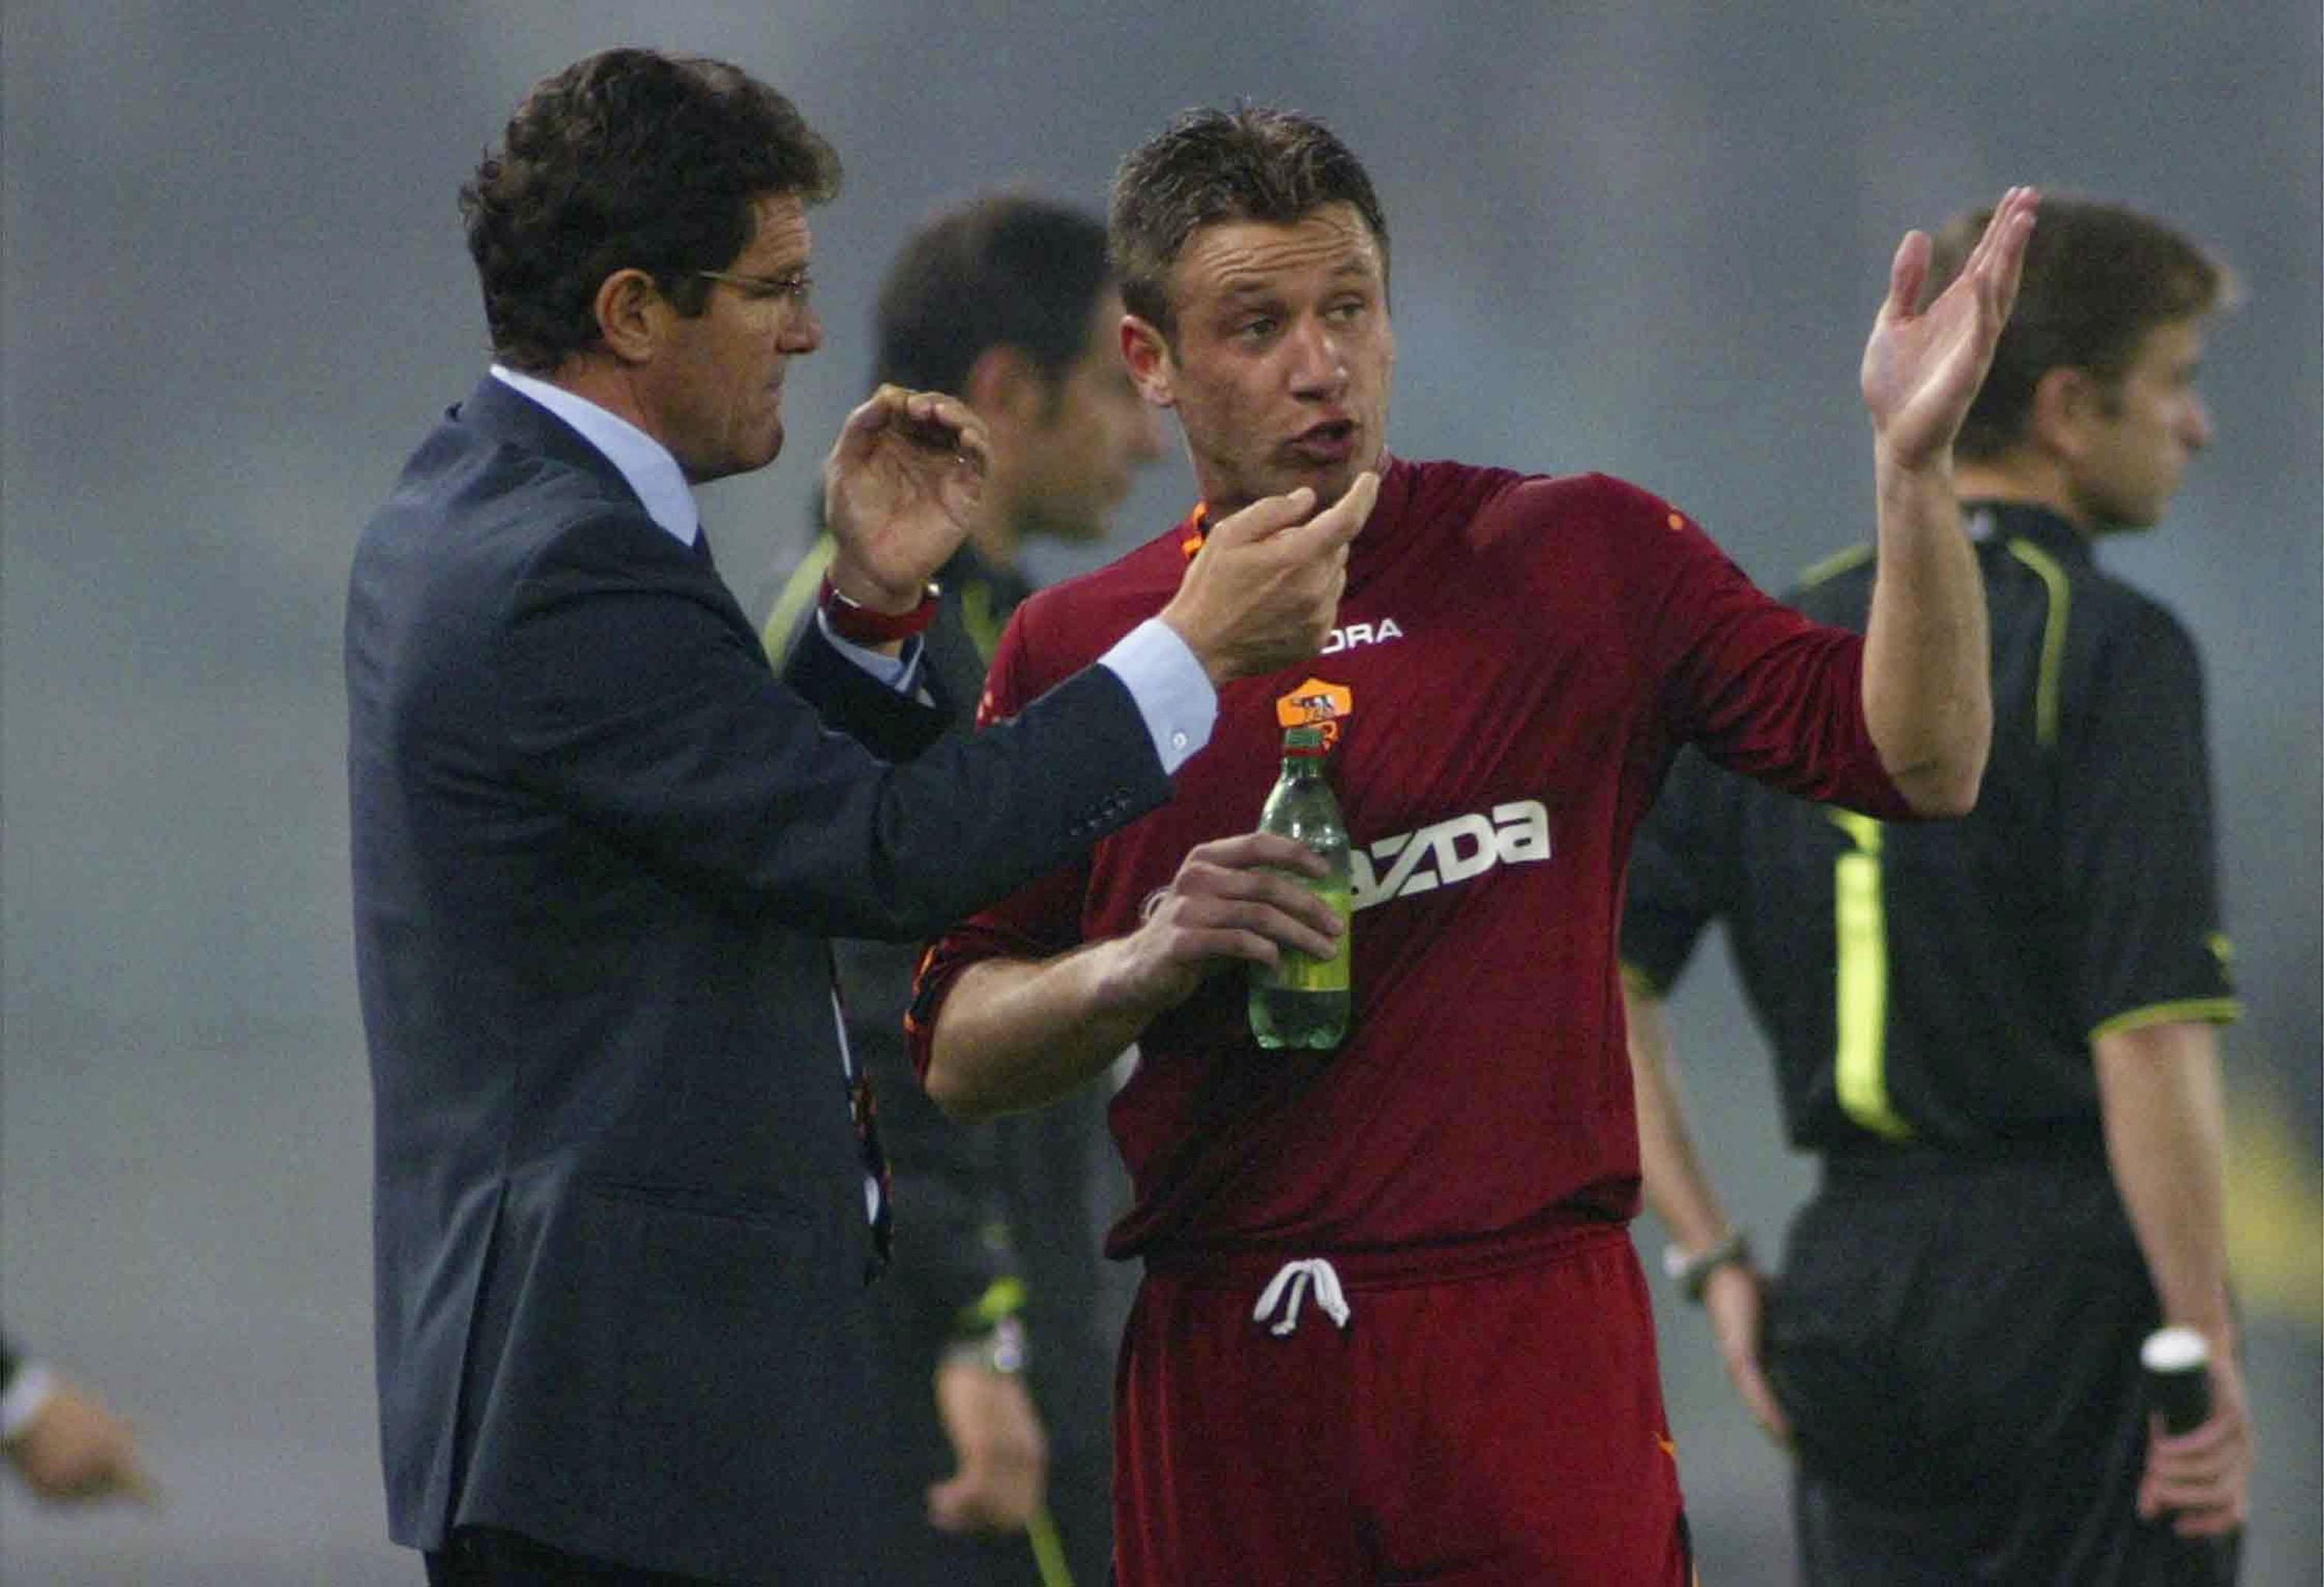 Antonio Cassano fell out with Roma boss Fabio Cappello after a big-money move from Bari